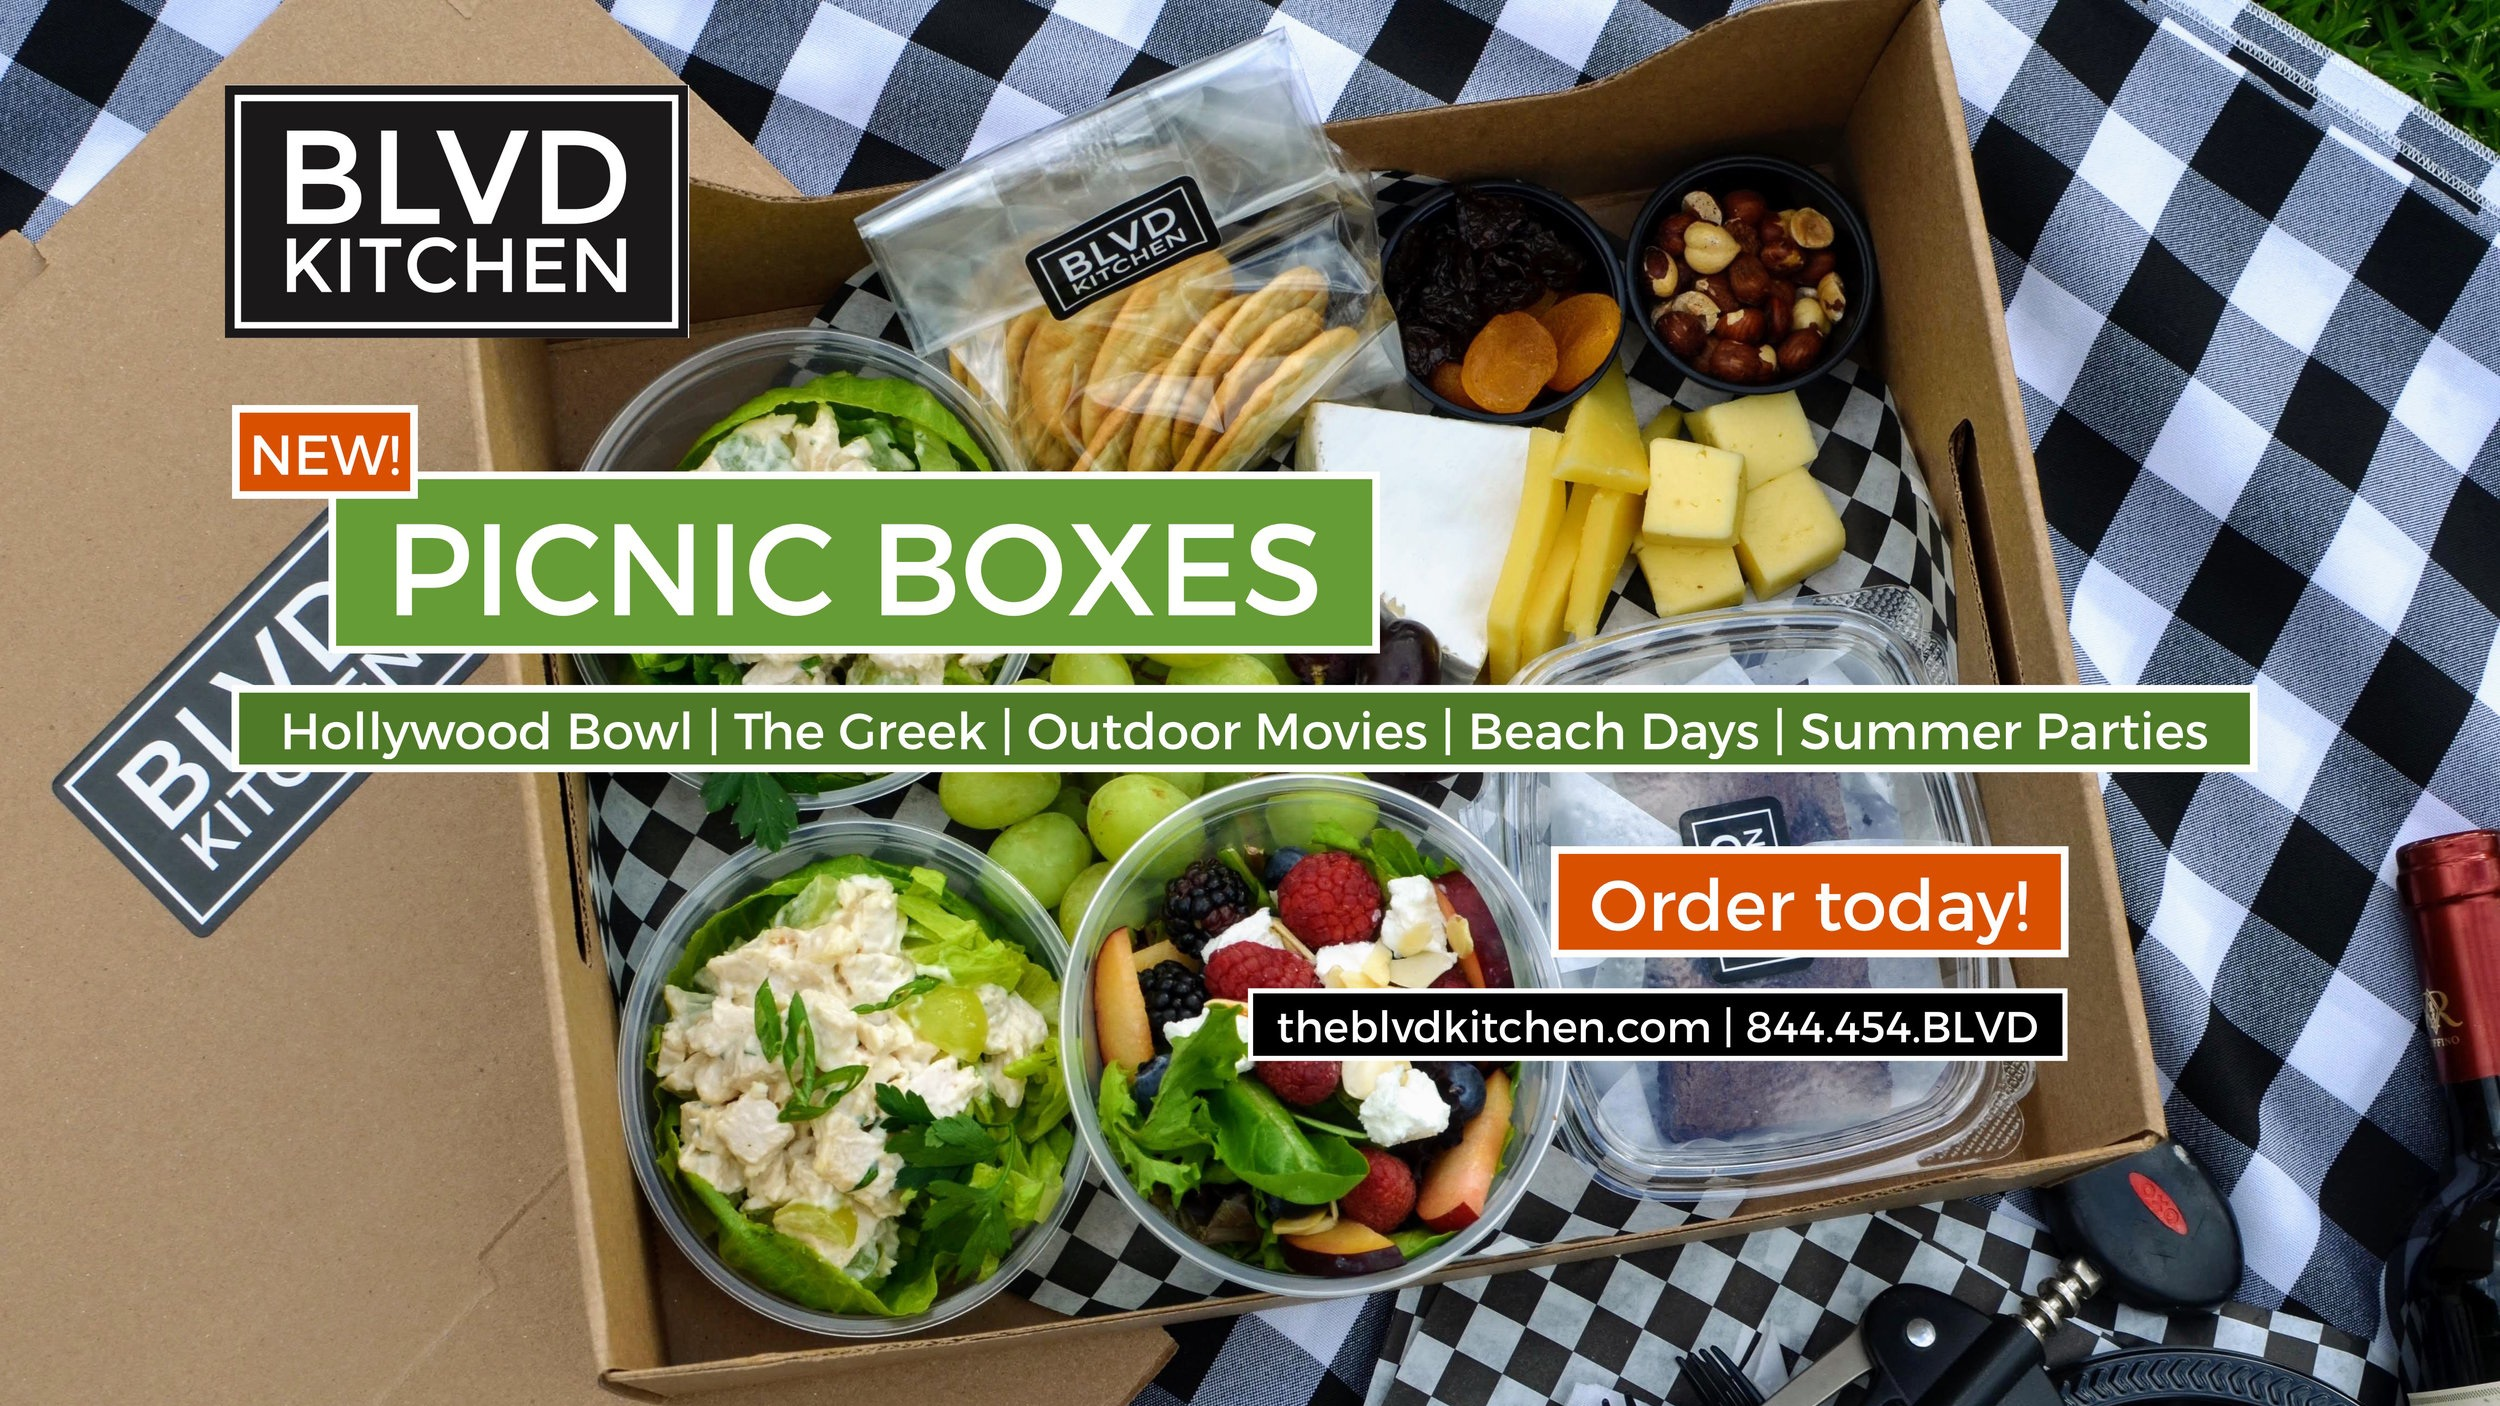 BLVD Picnic Box Flyer - Order Today.JPG